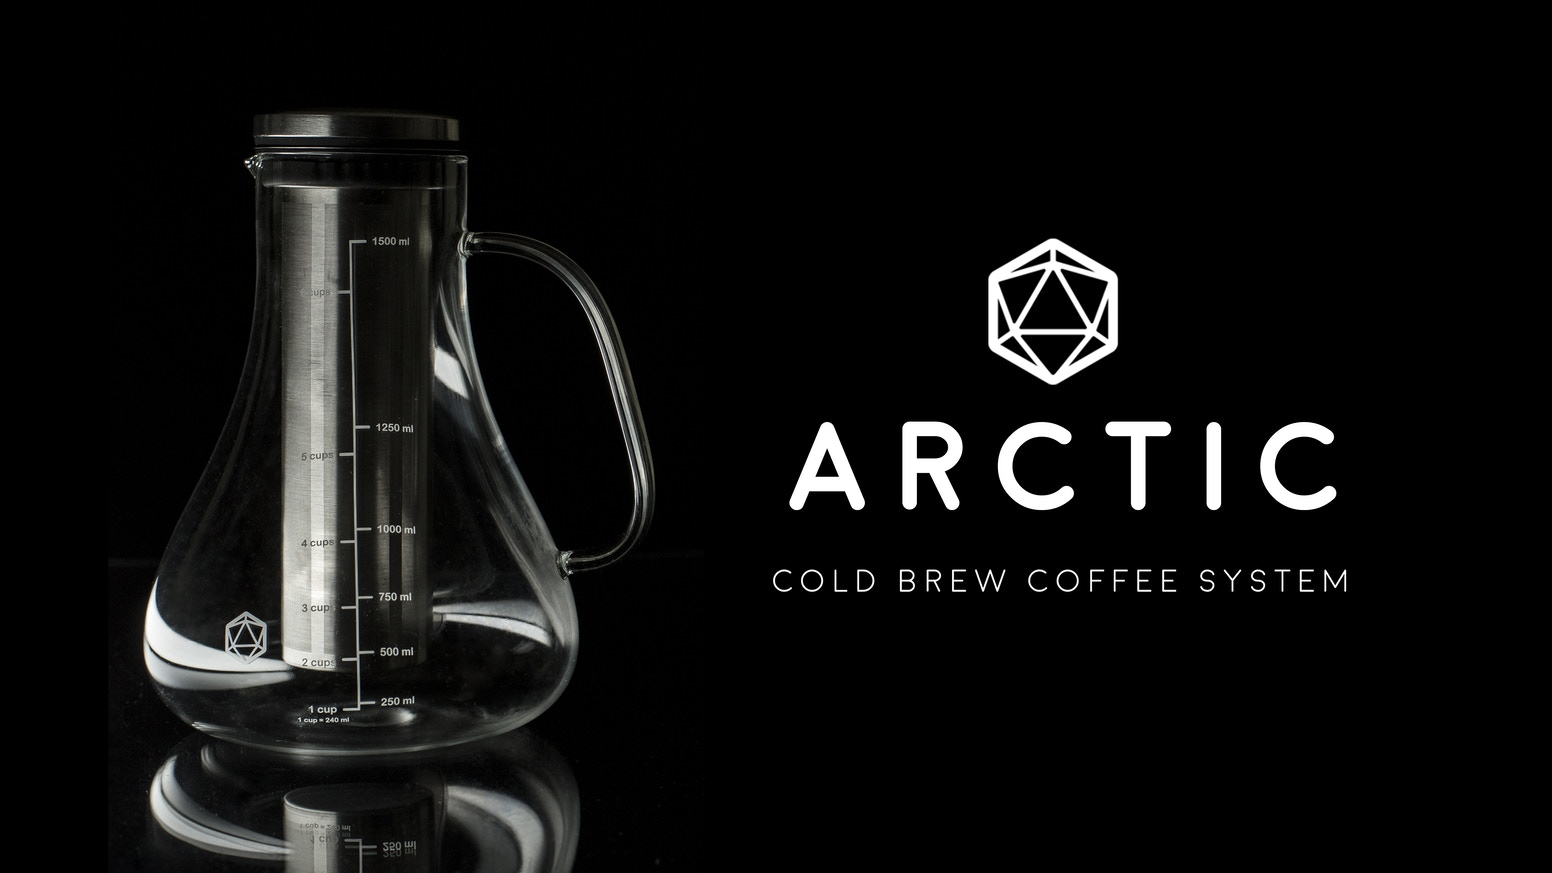 The future of coffee is cold brew. The Arctic lets you make your own easily to enjoy the perfect cup of coffee any time.